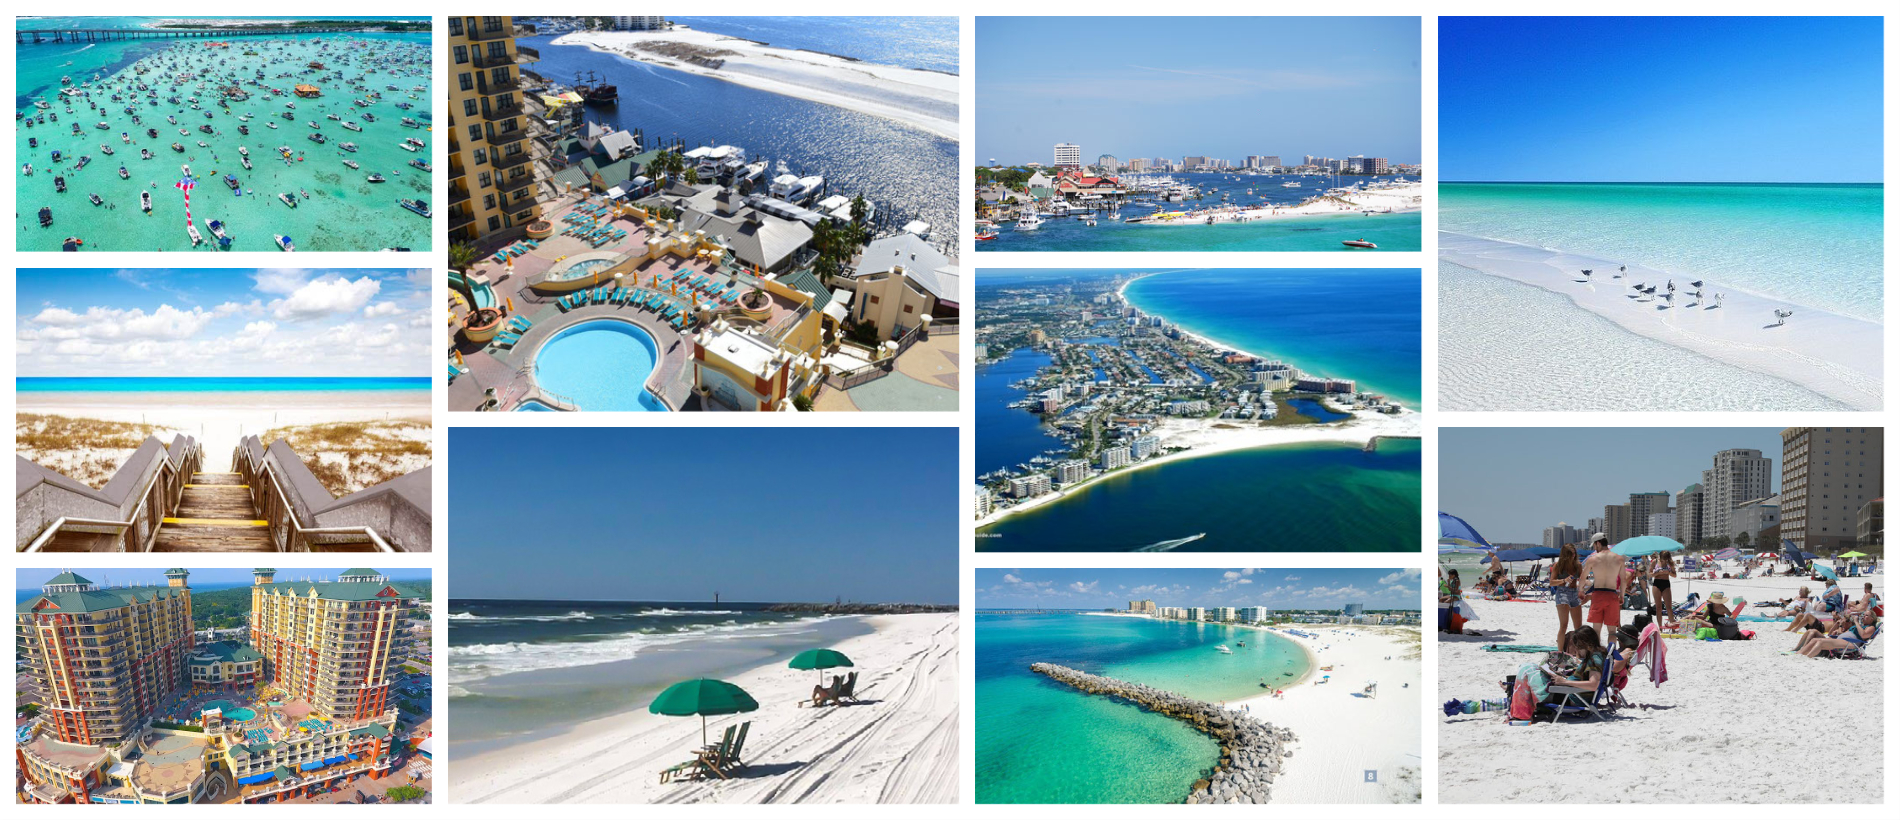 Destin Florida homes for sale and condos for sale Life's a Beach Luxury Real Estate